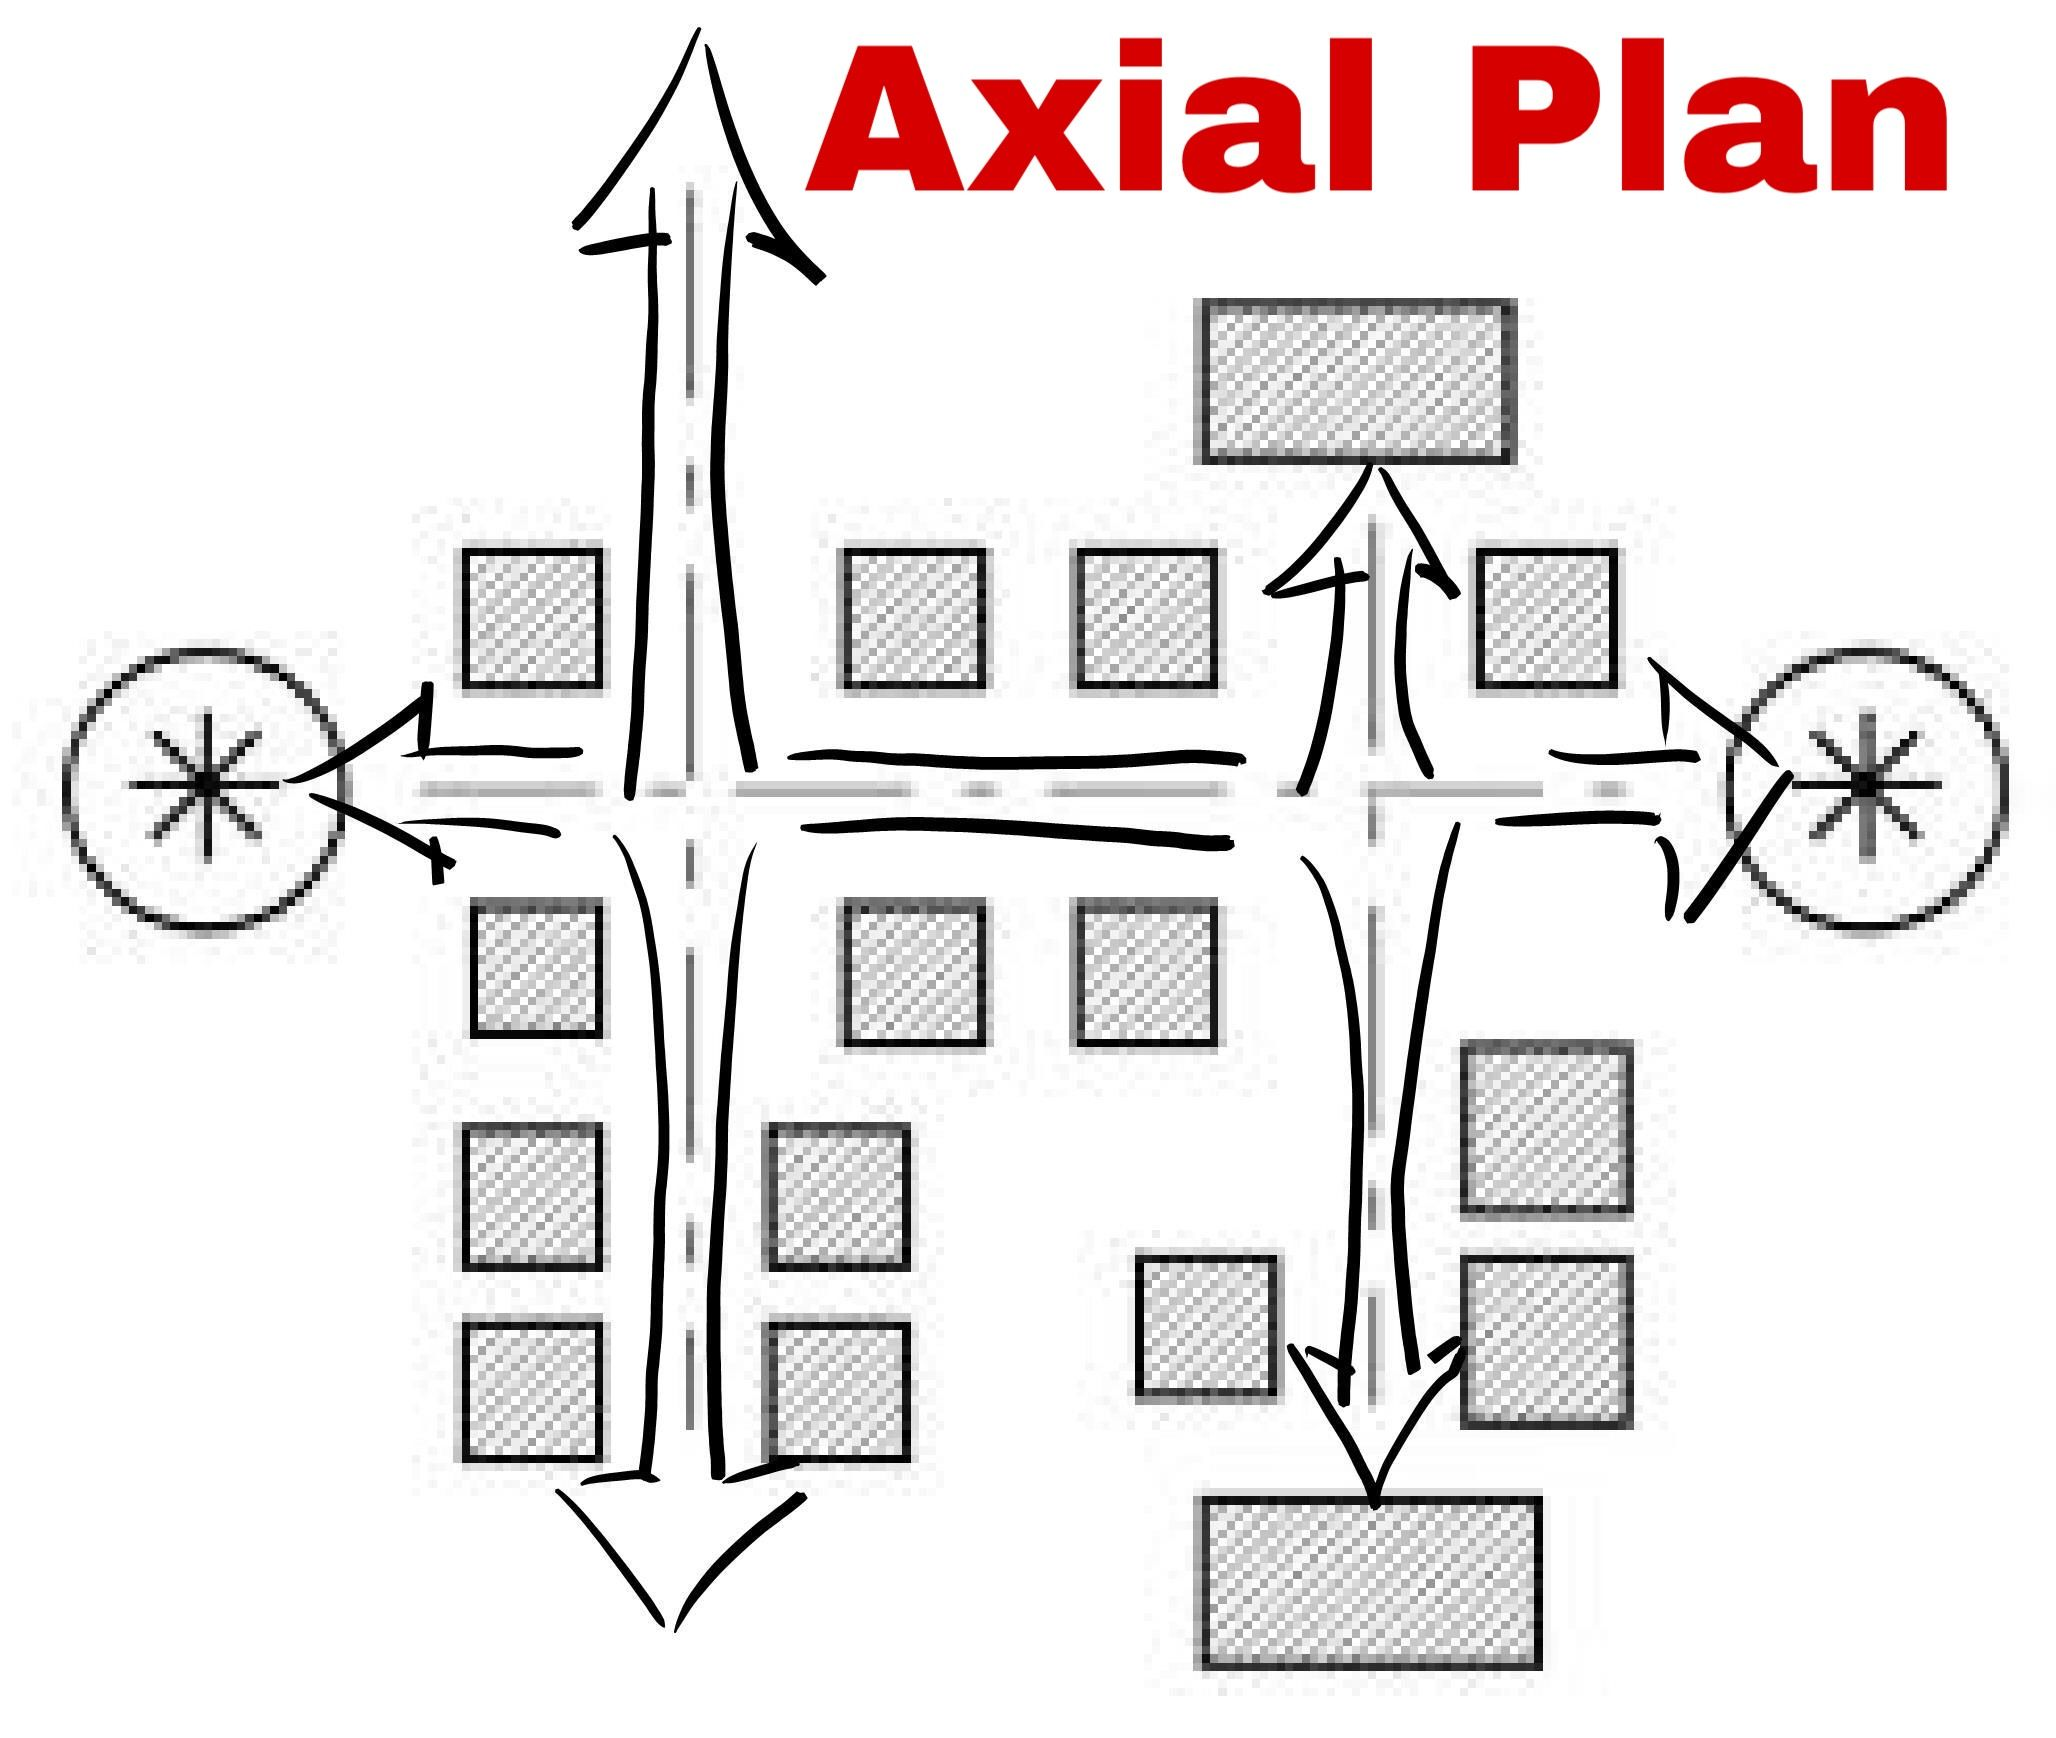 Axial Plan Configuration Aligns Spaces On A Significant